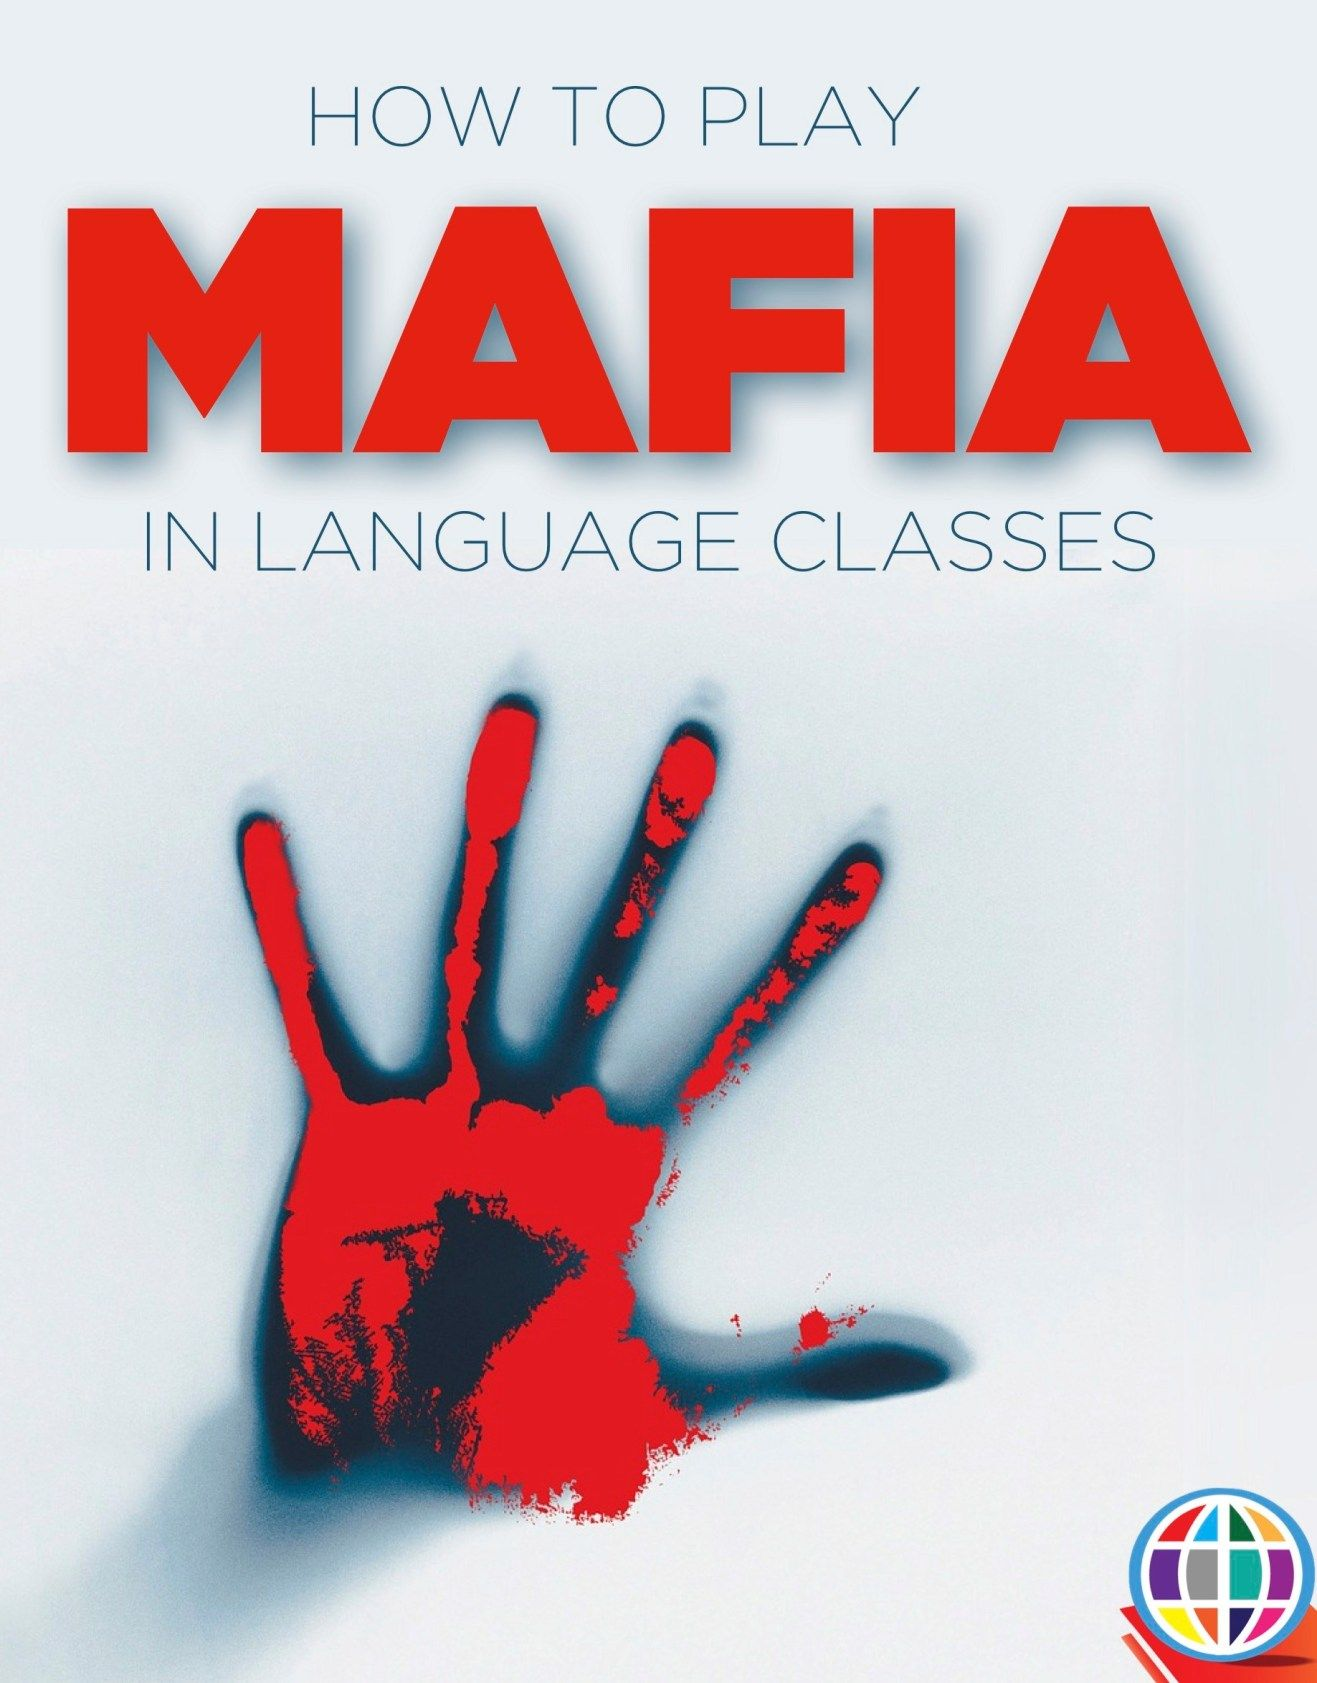 Game Mafia roleplaying game for language classes World